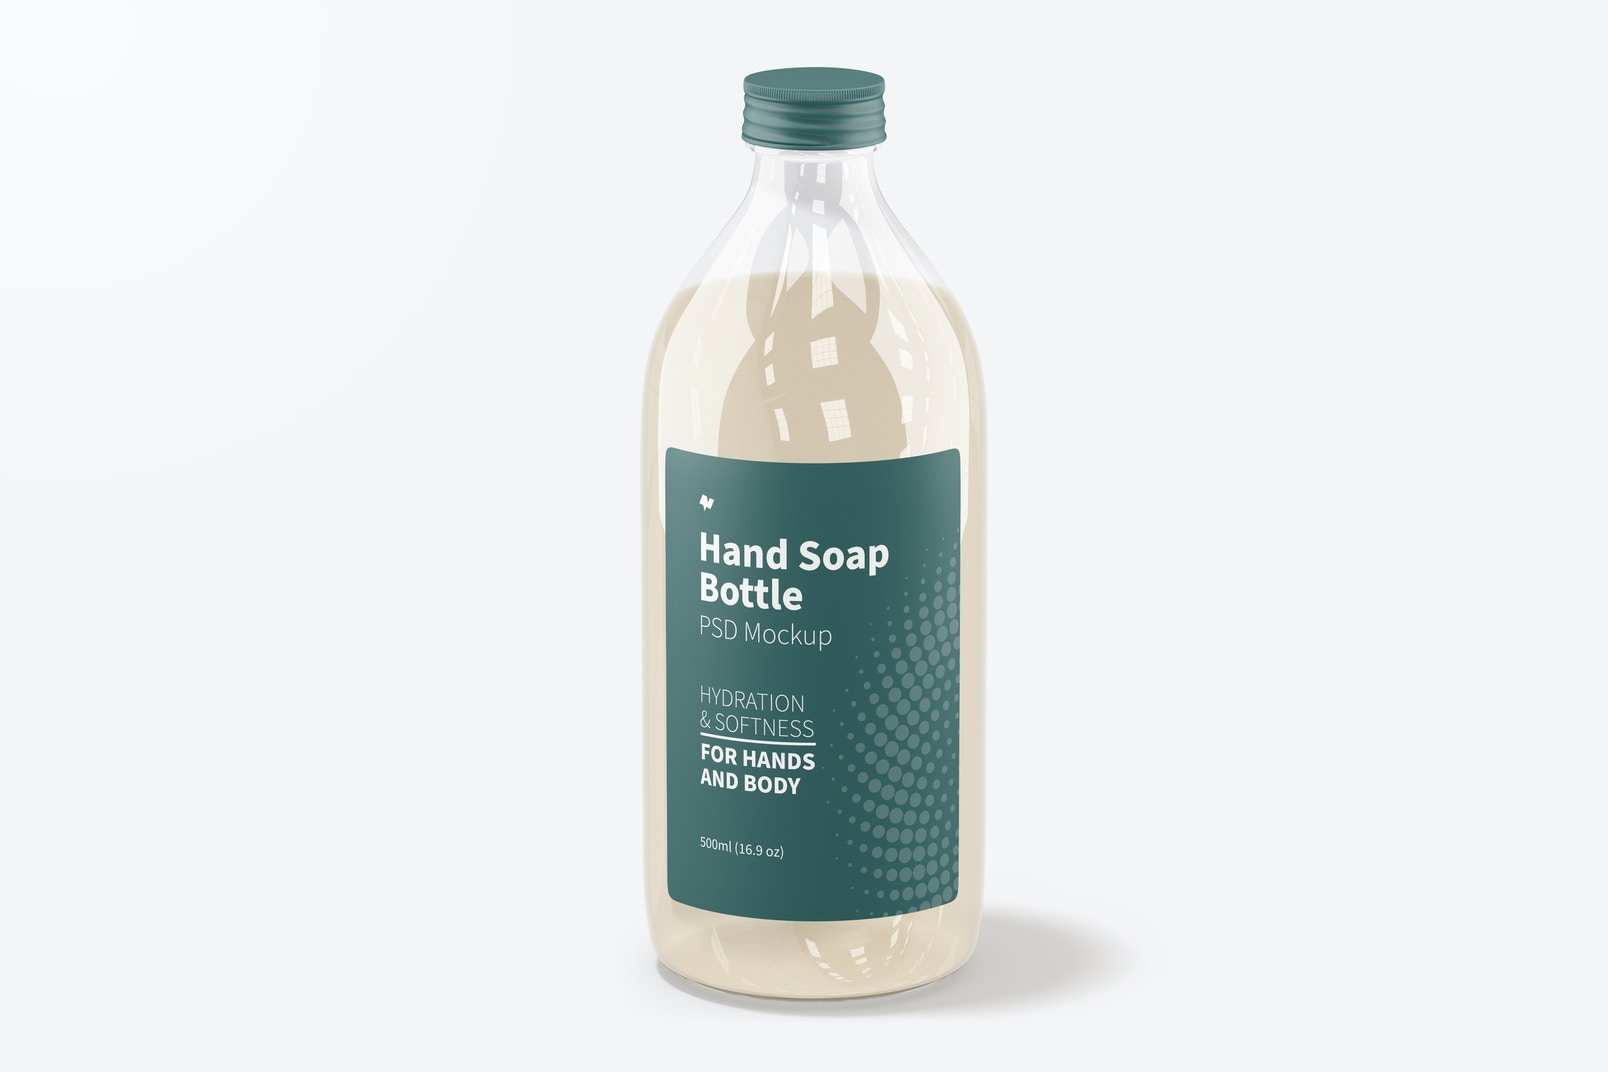 Hand Soap Clear Bottle Mockup, Front View